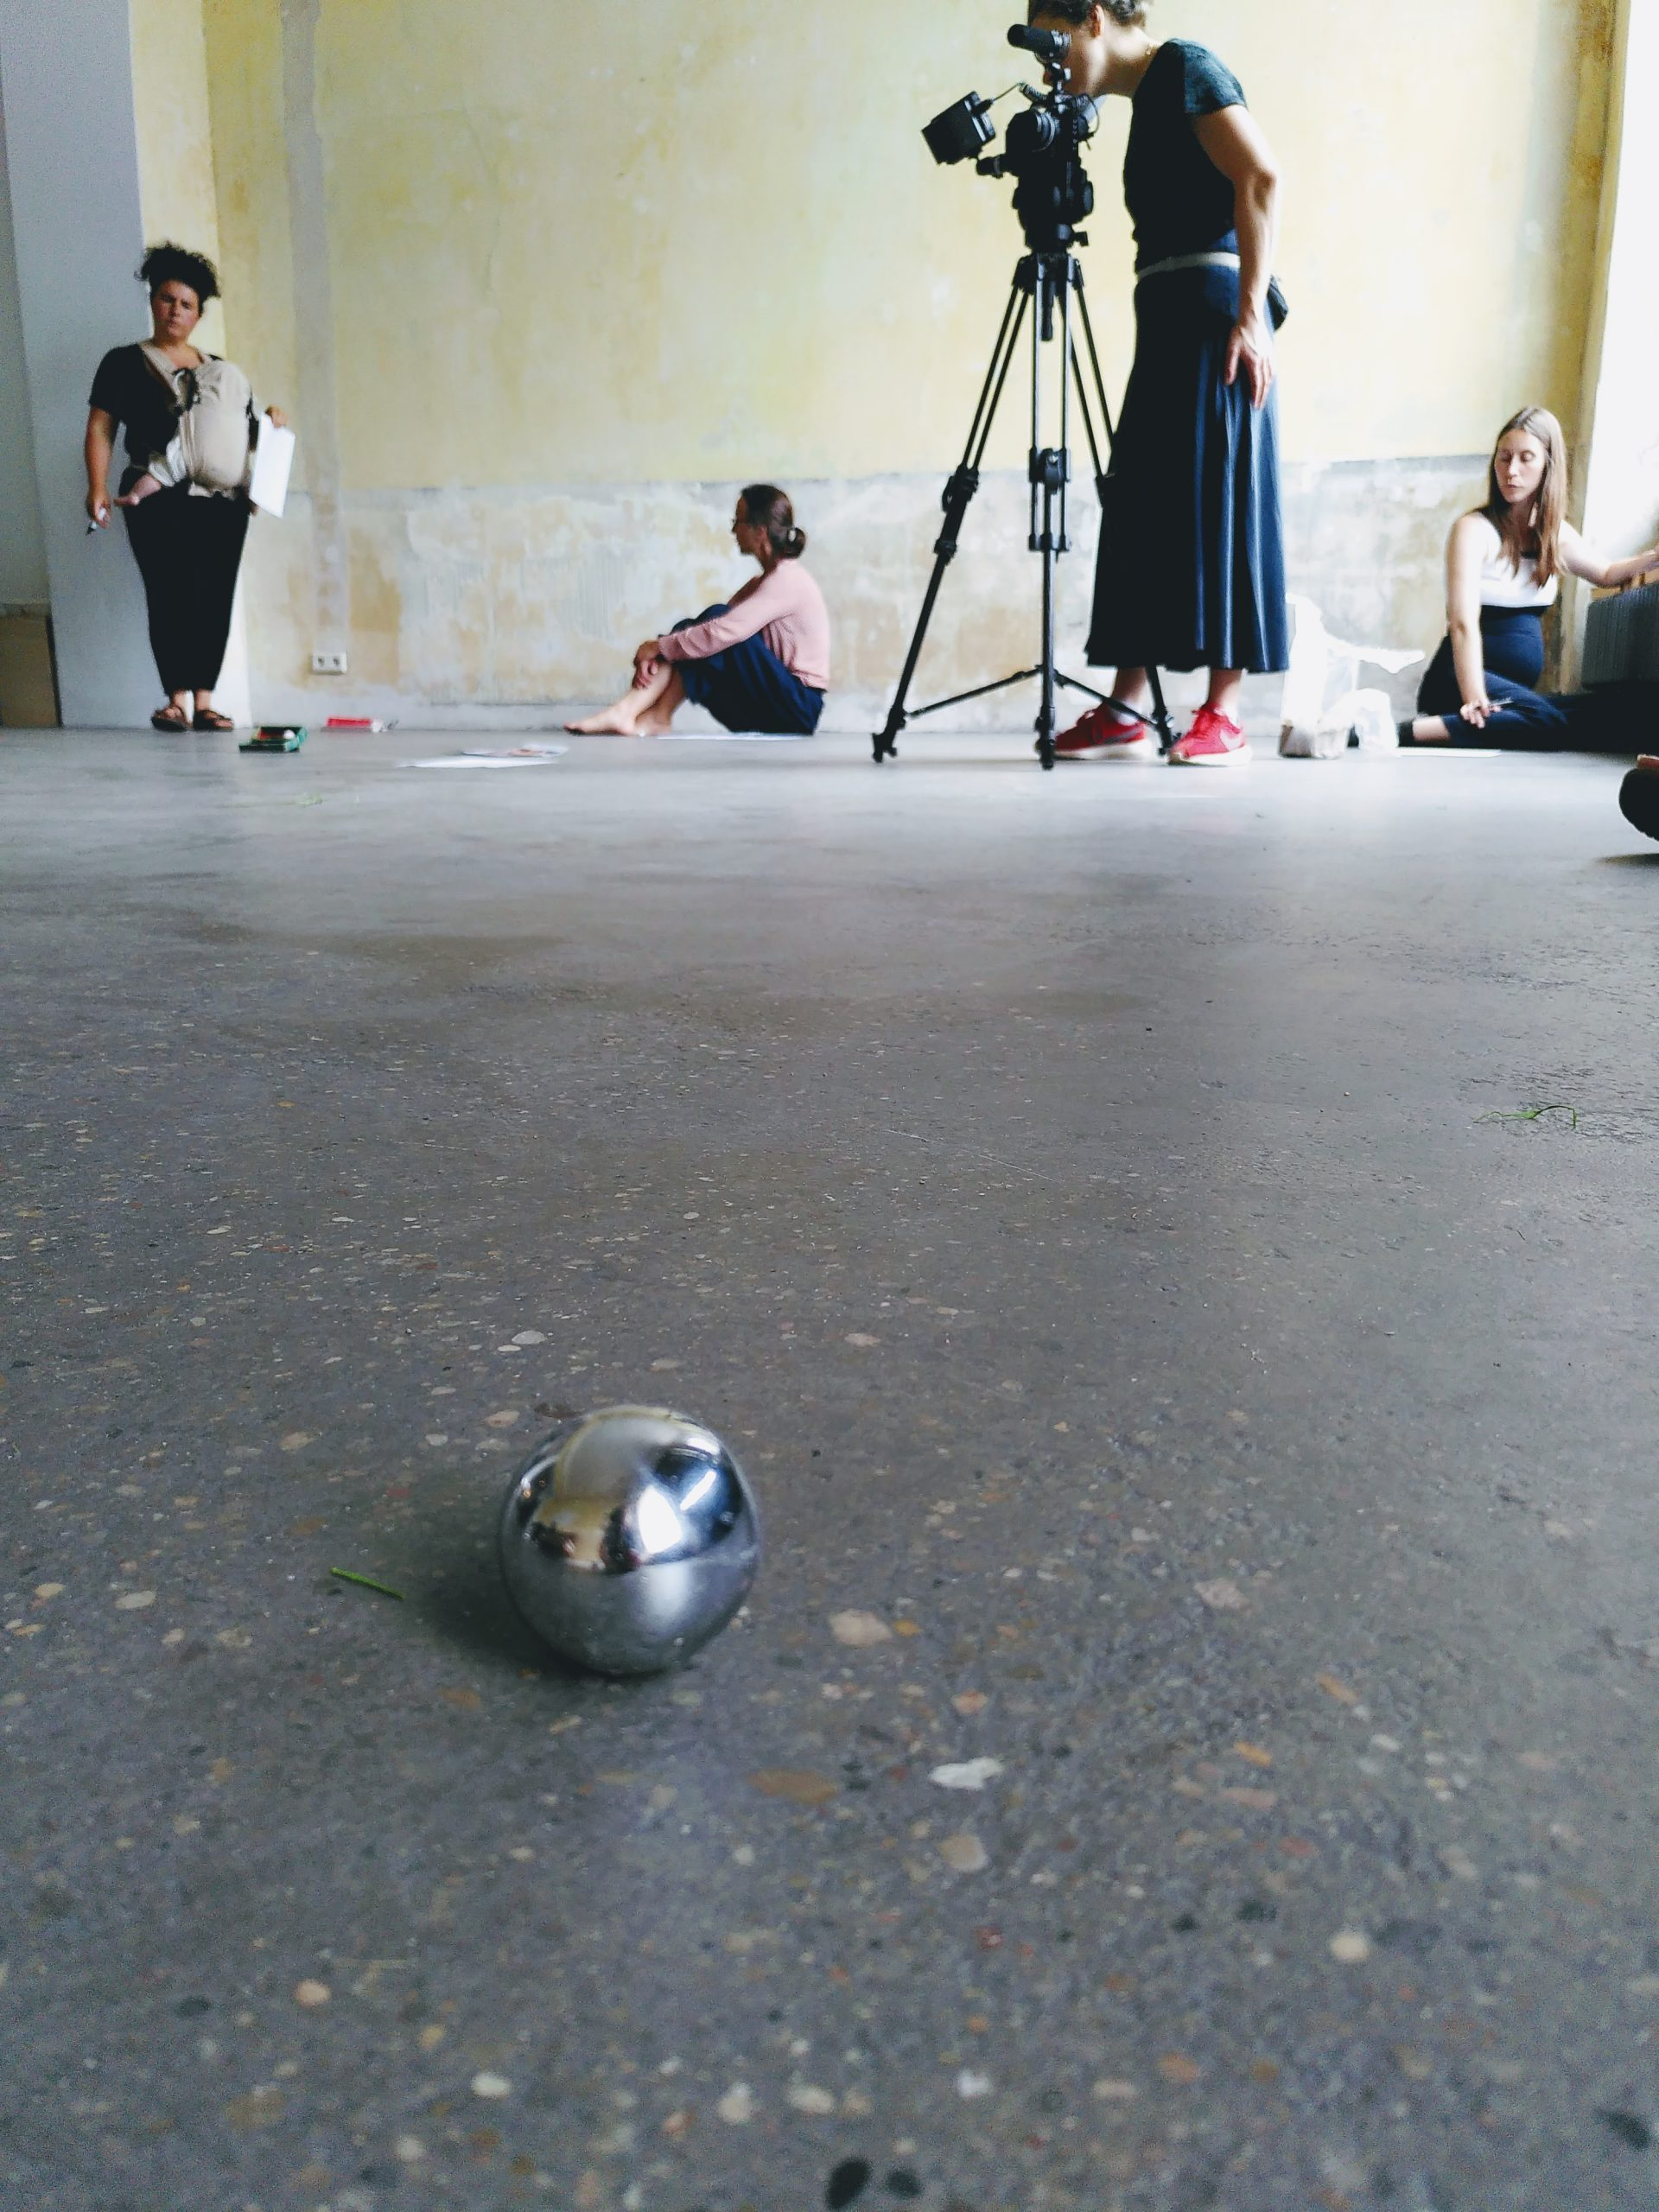 A silver sound ball on stone floor, behind it standing a person with tripod and camera, a standing person with child and two sitting persons